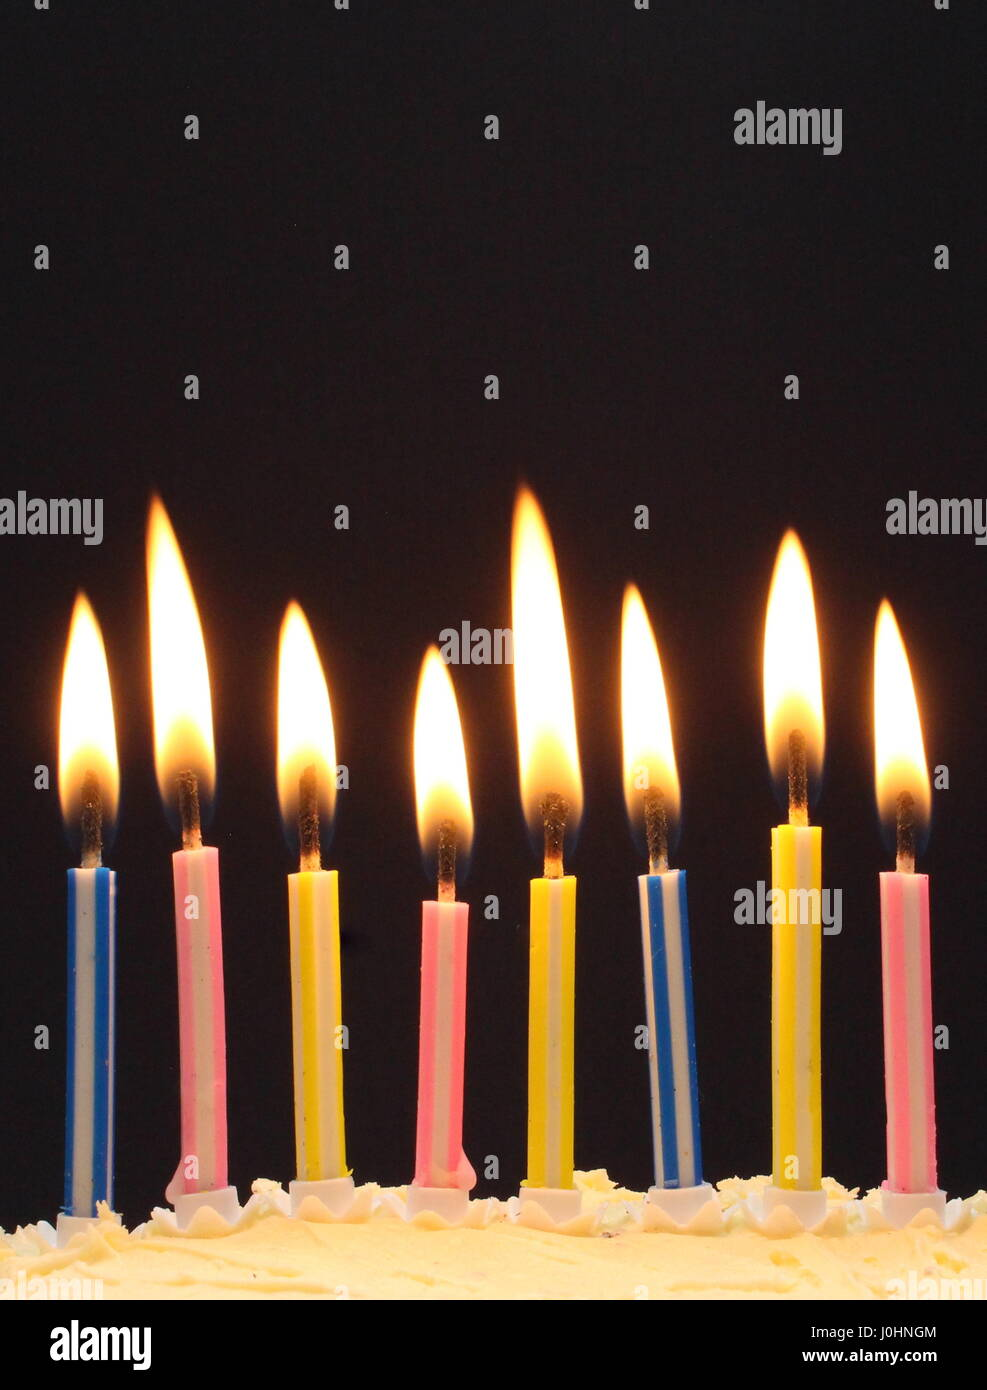 Birthday cake candles aflame Stock Photo